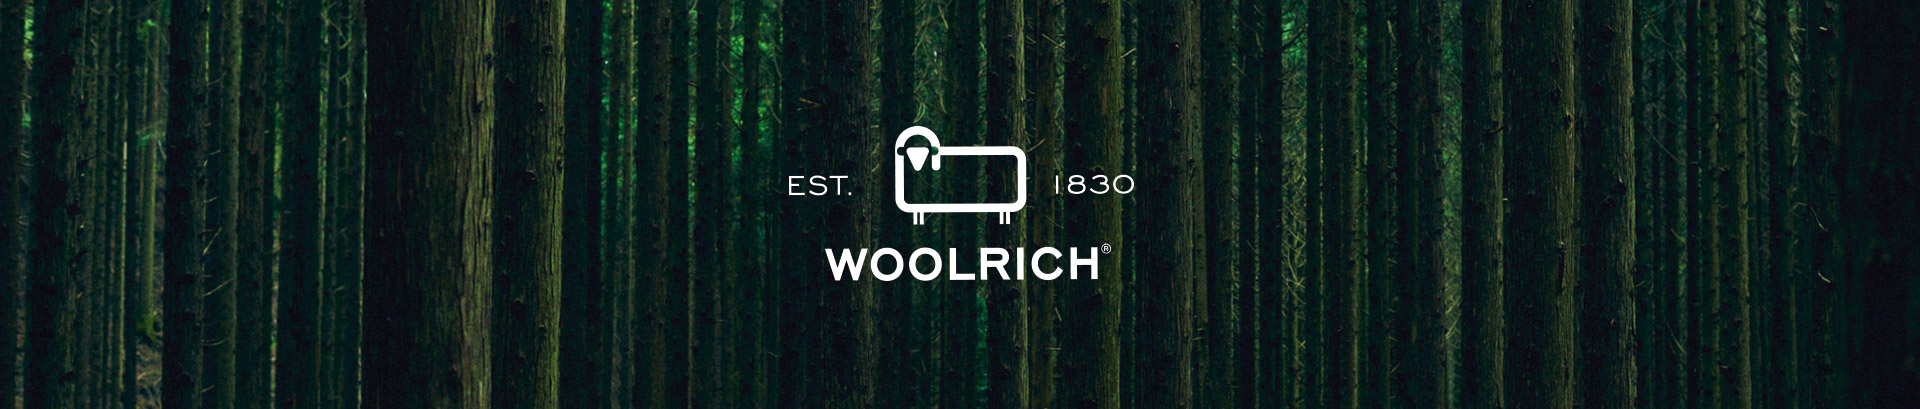 Woolrich UK Outdoor Label